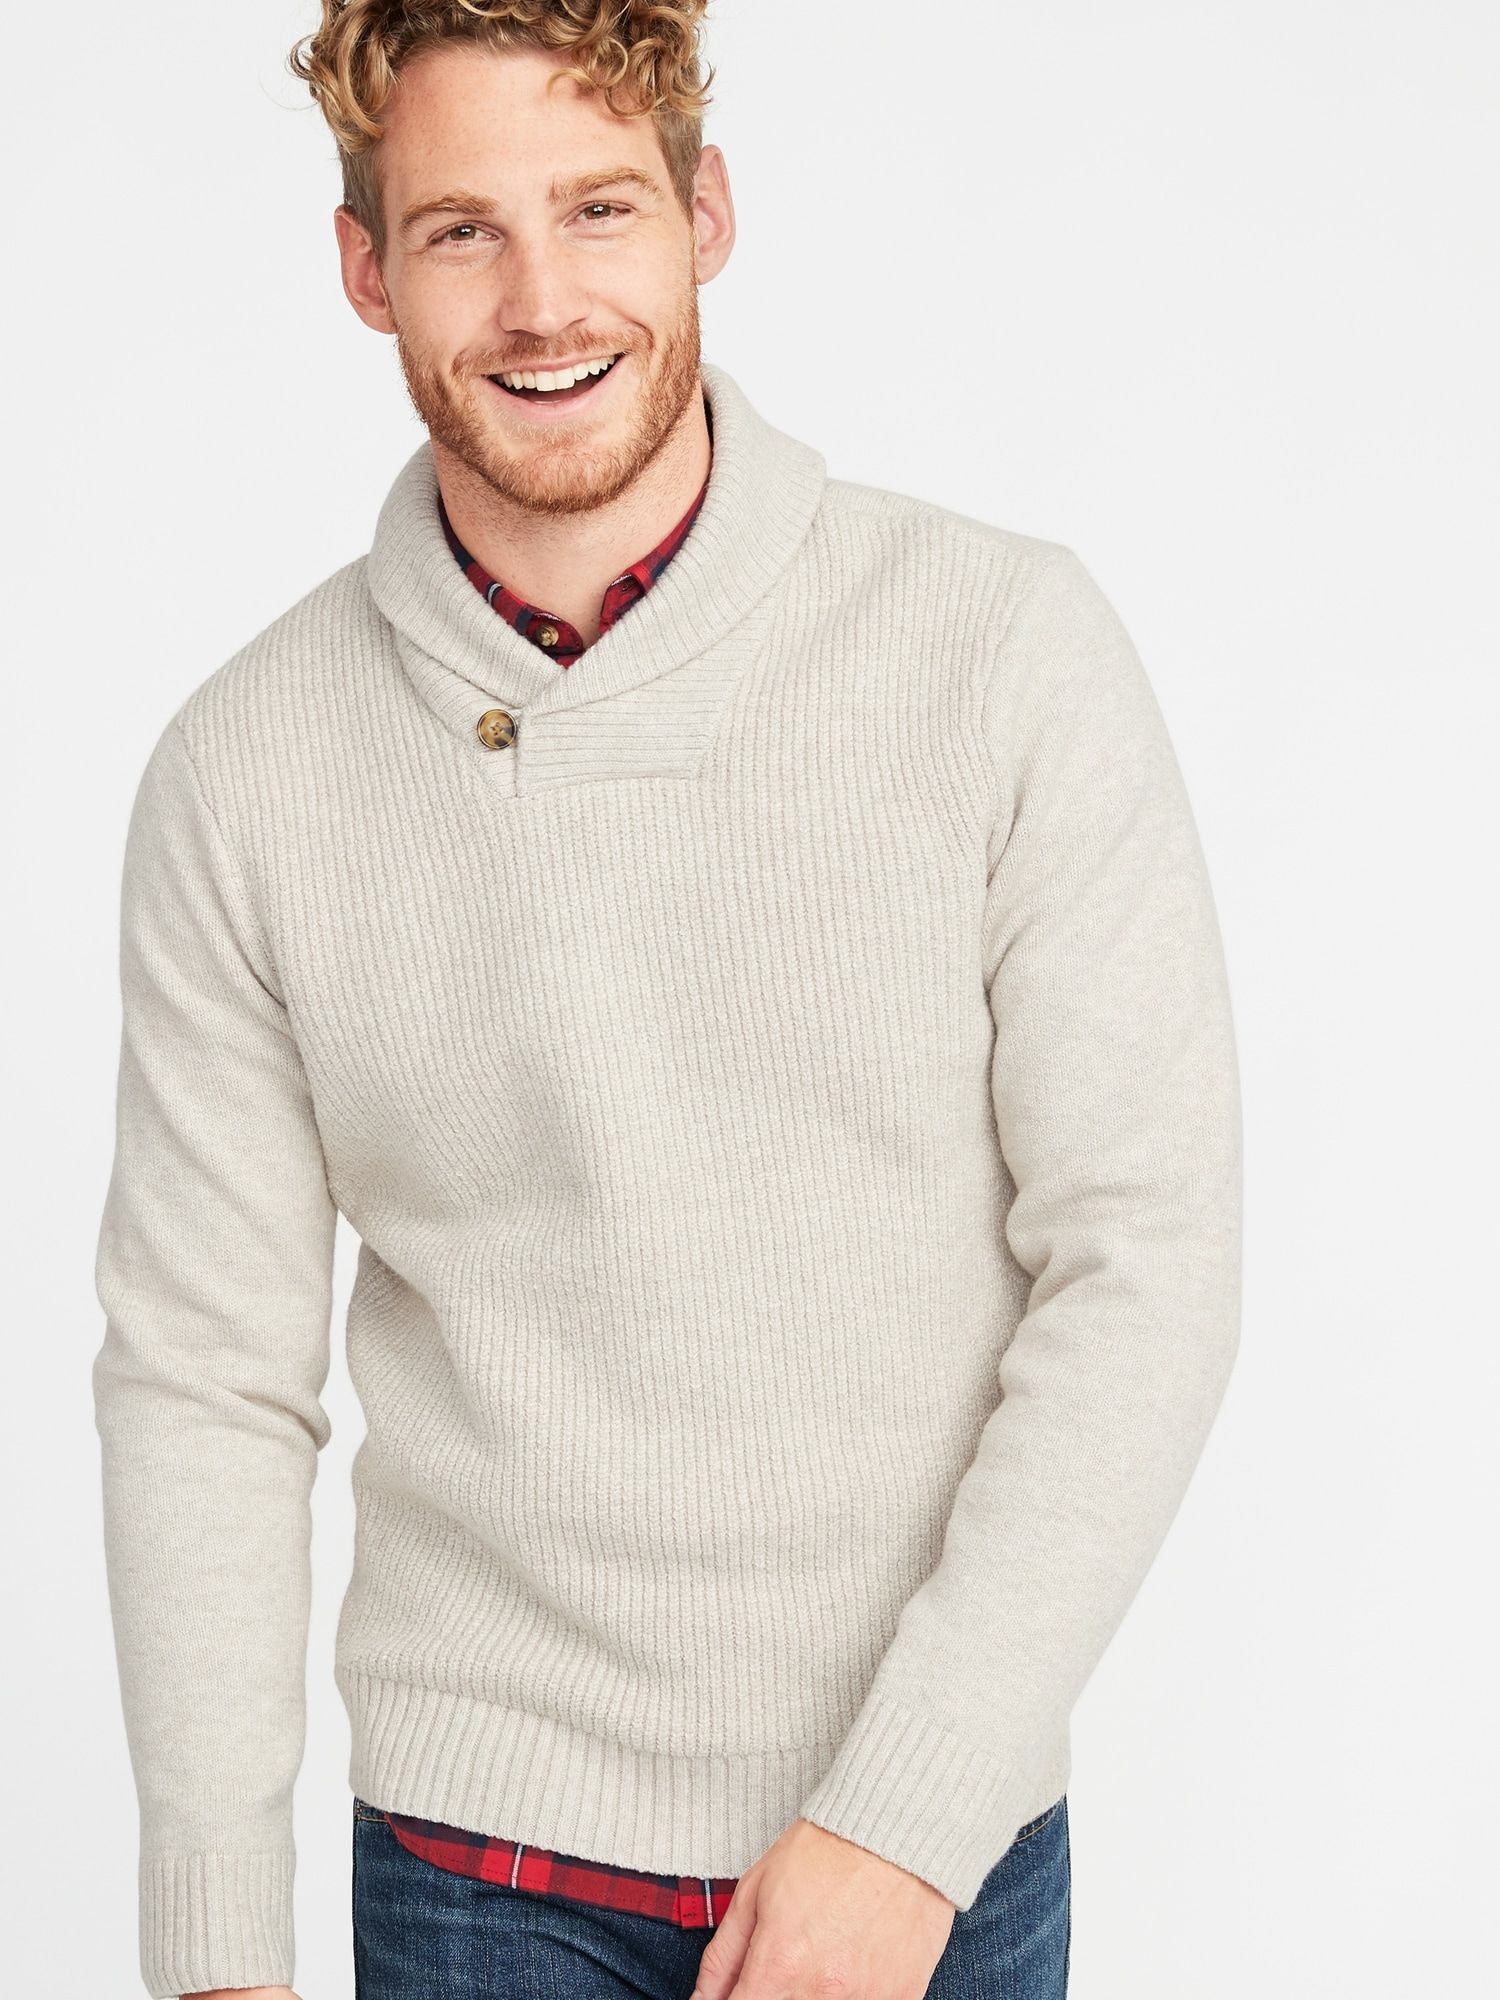 0ec238cb5e03e4 Shawl-Collar Sweater for Men in 2019 | Studio Style Guide | Shawl ...